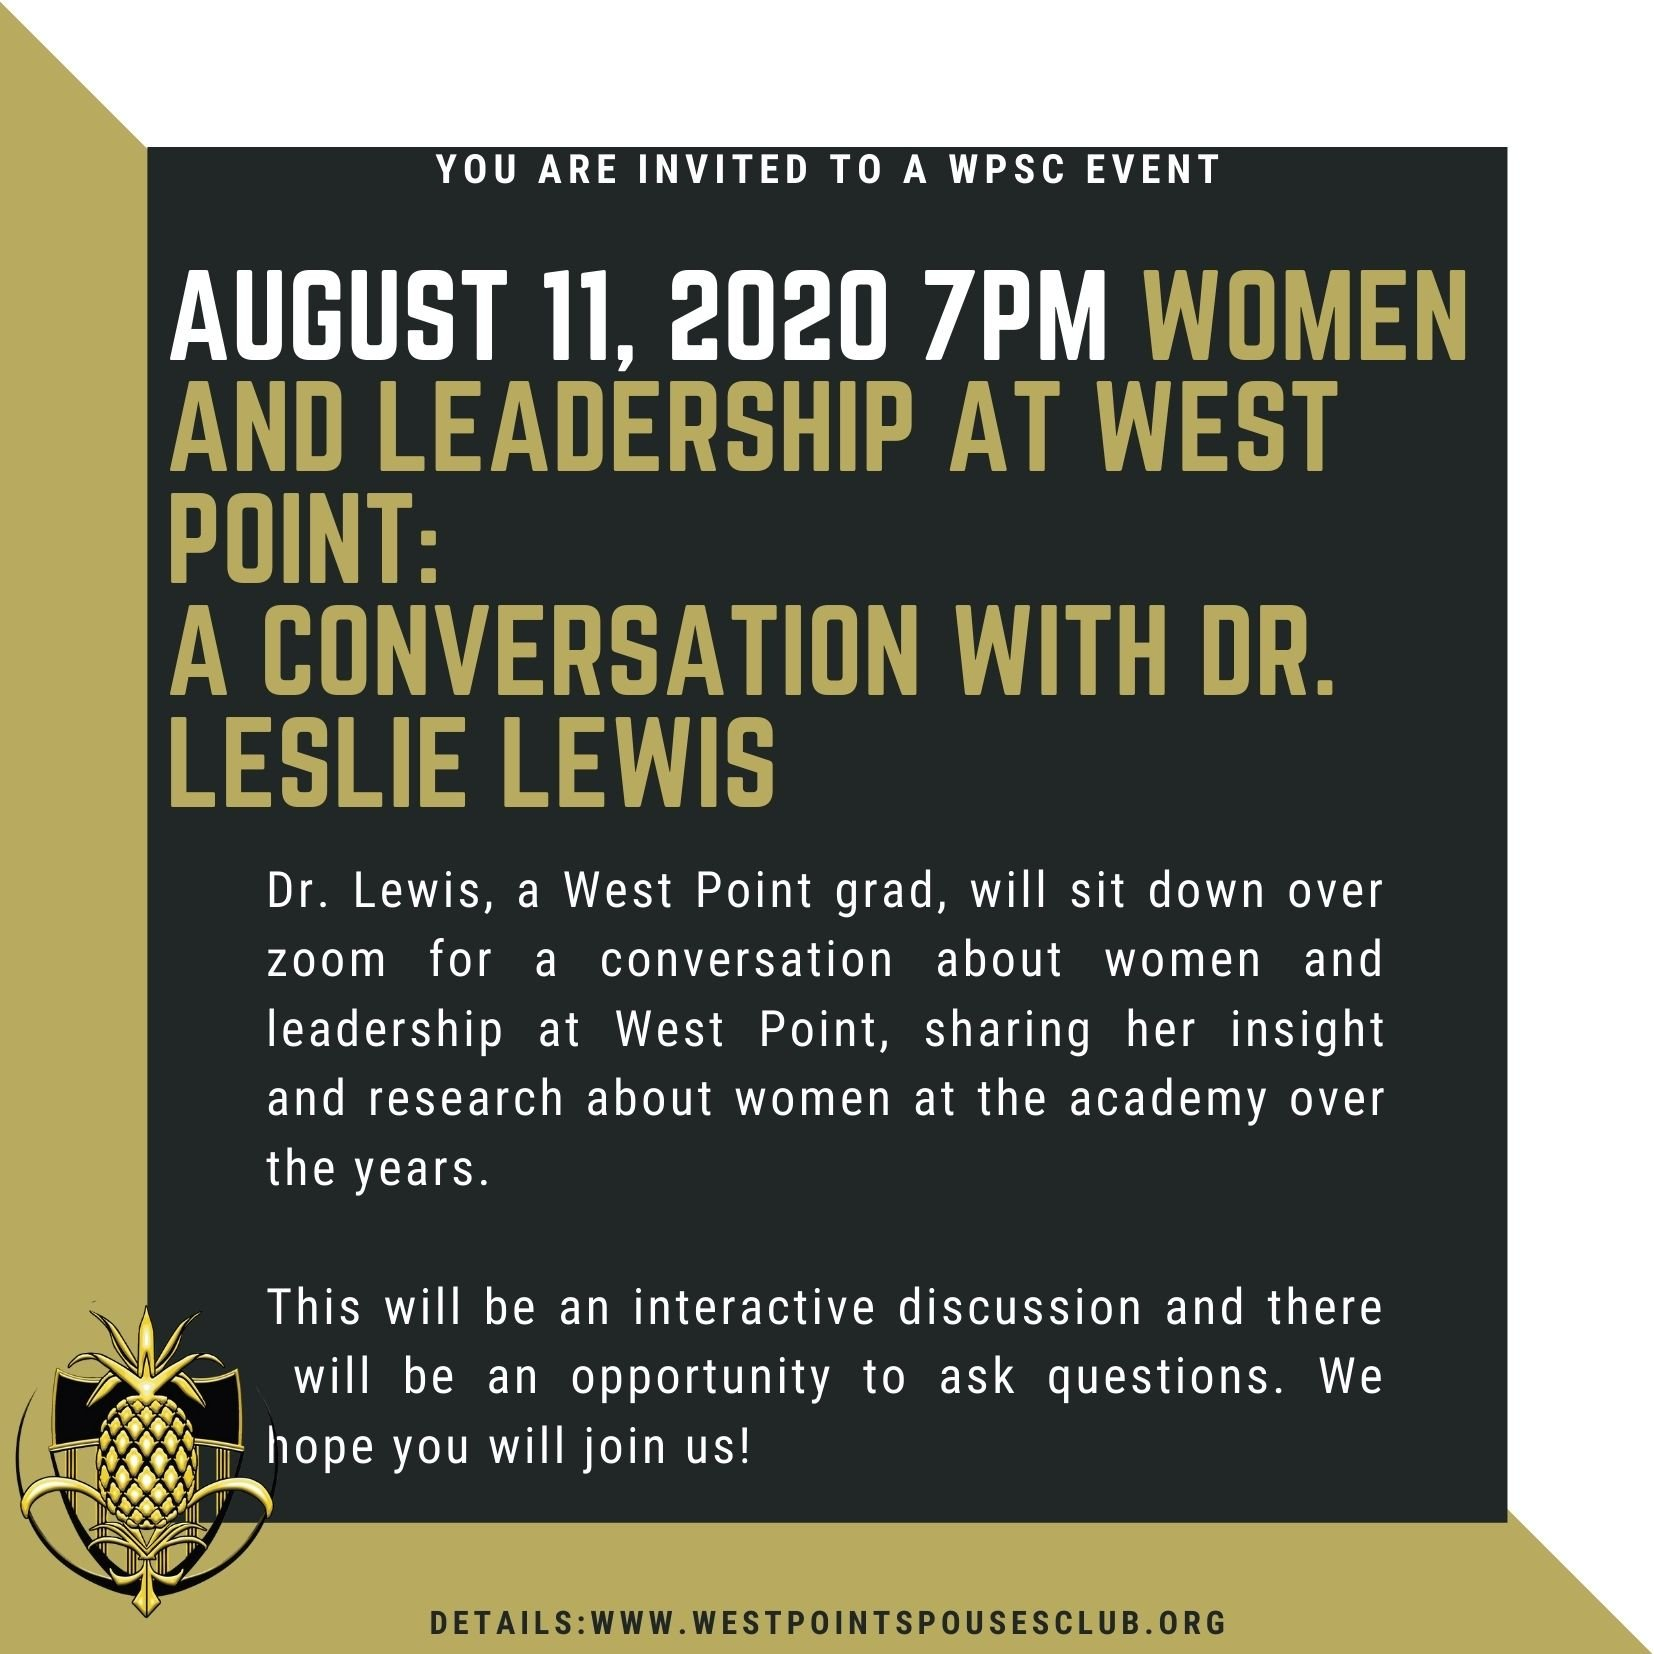 Women and leadership at west point event graphic